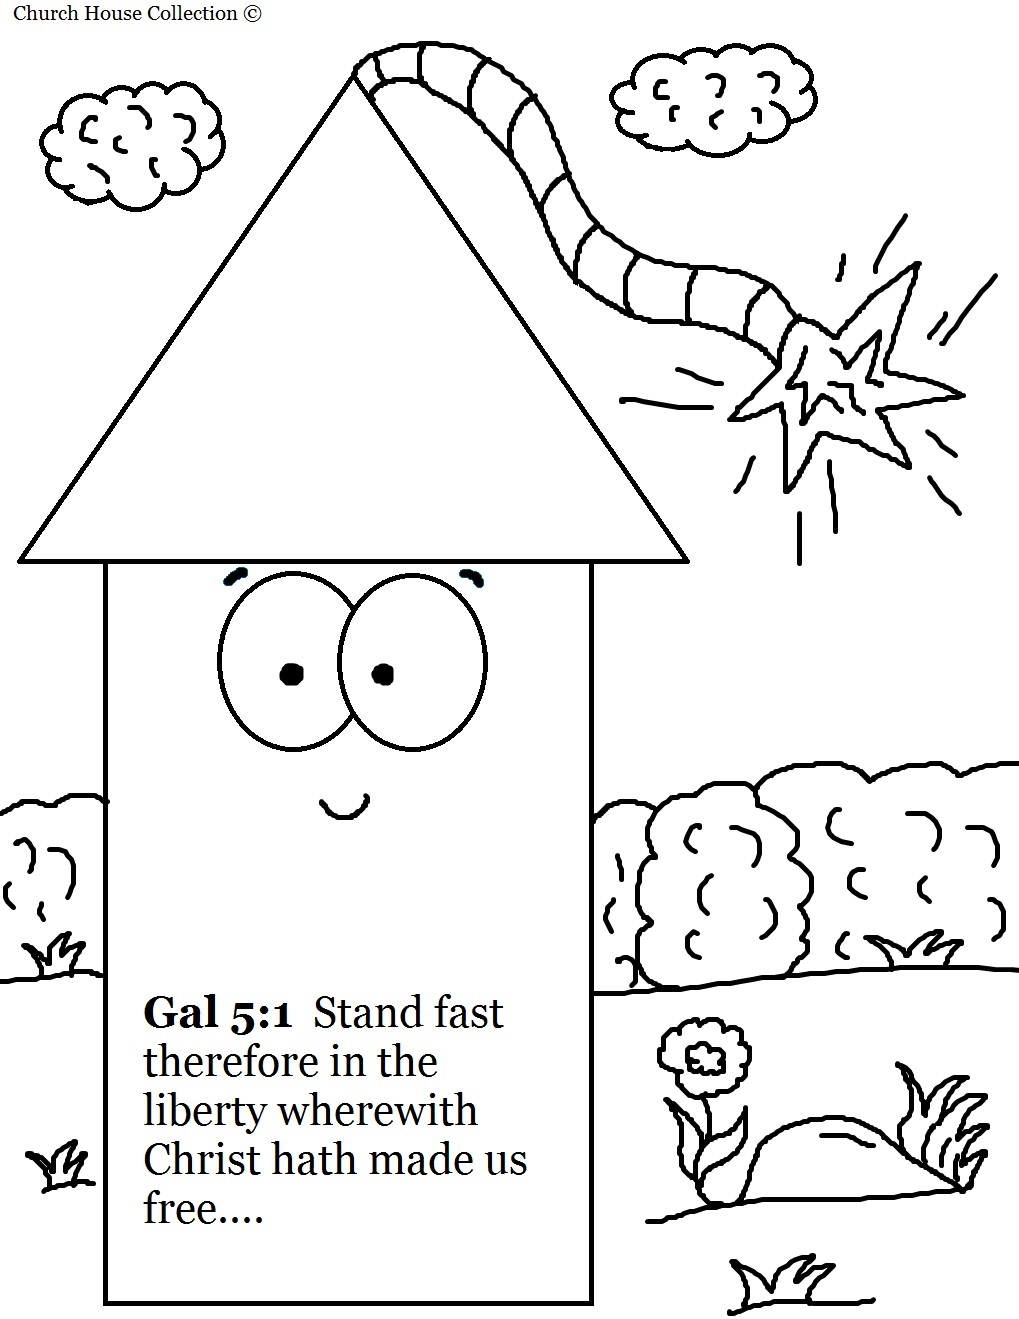 Free coloring pages fourth of july - Fourth Of July Fireworks Coloring Pages For Sunday School Galatians 5 1 Christ Hath Made Us Free